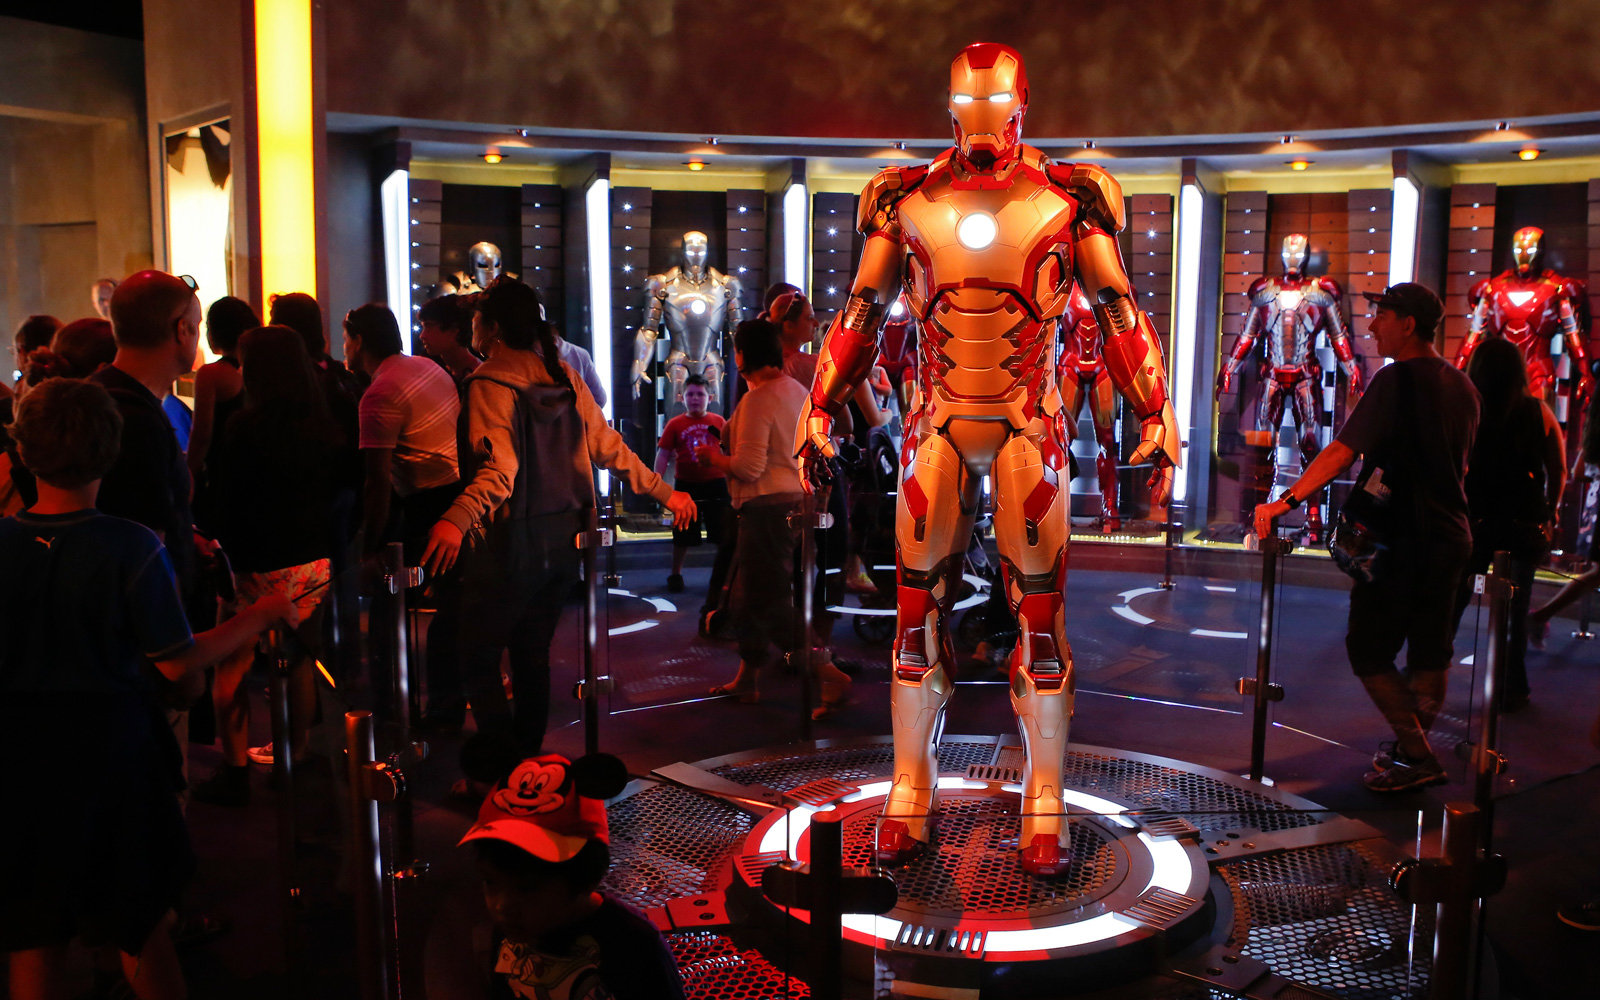 'Bug's Land' squashed to bring Iron Man and his friends to Disneyland